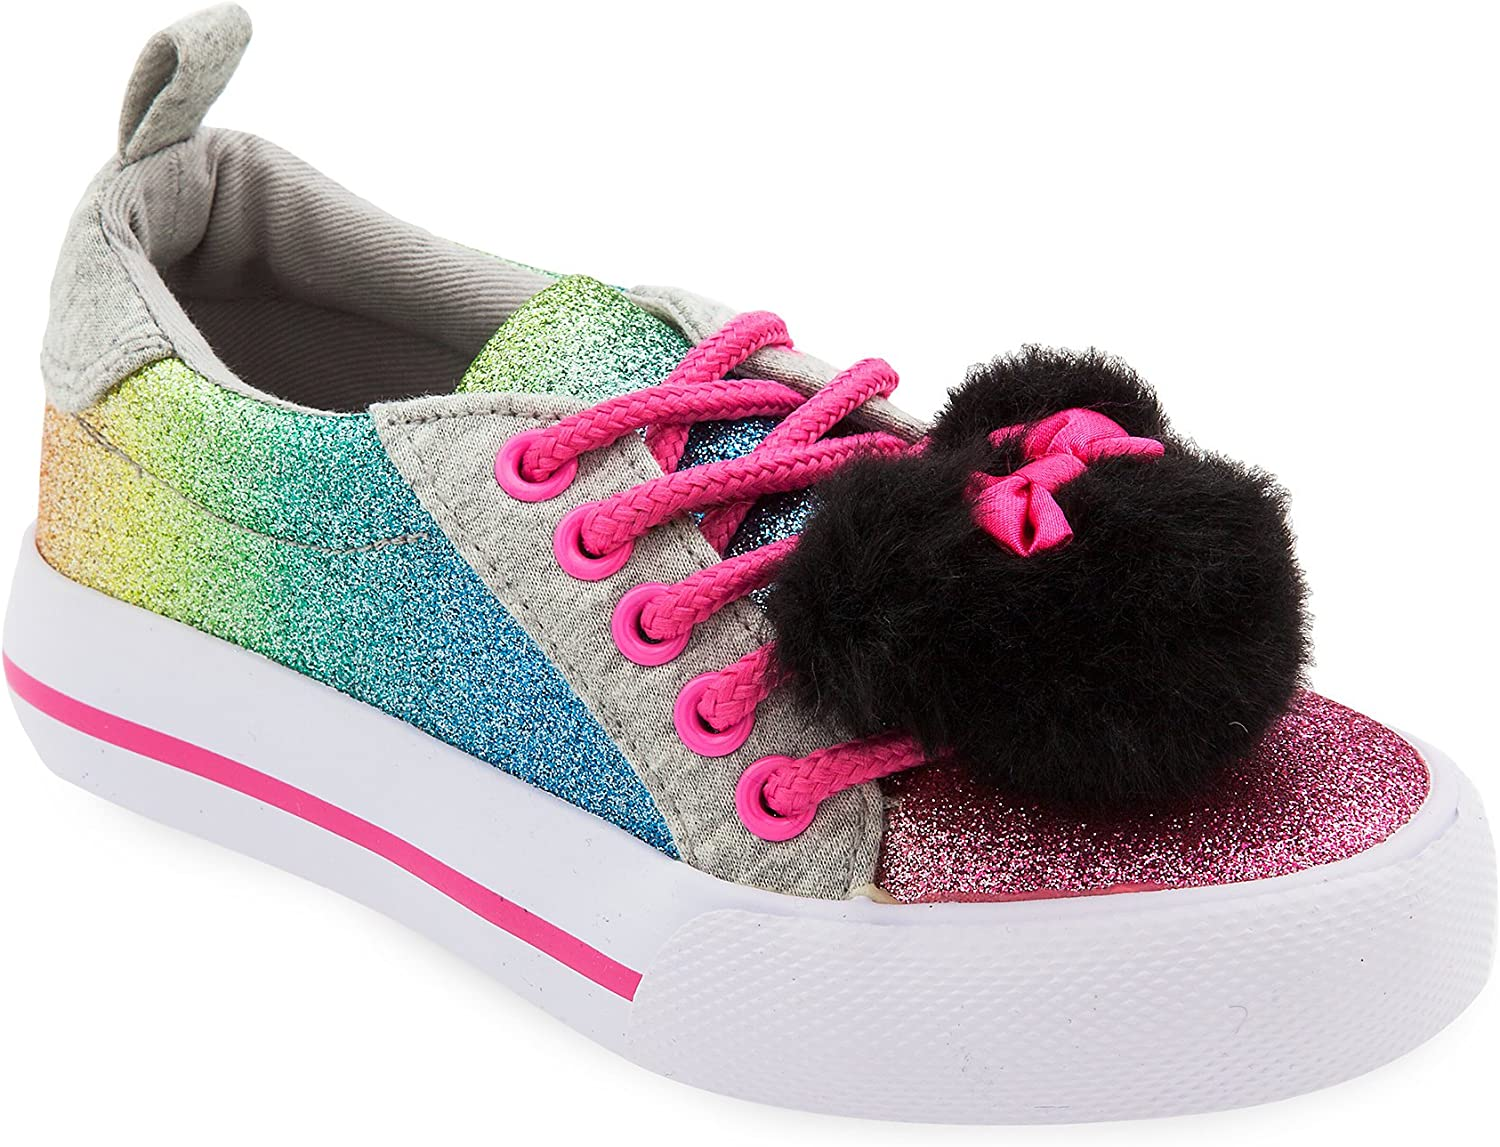 Disney Minnie Mouse Rainbow Sneakers for Girls Multi